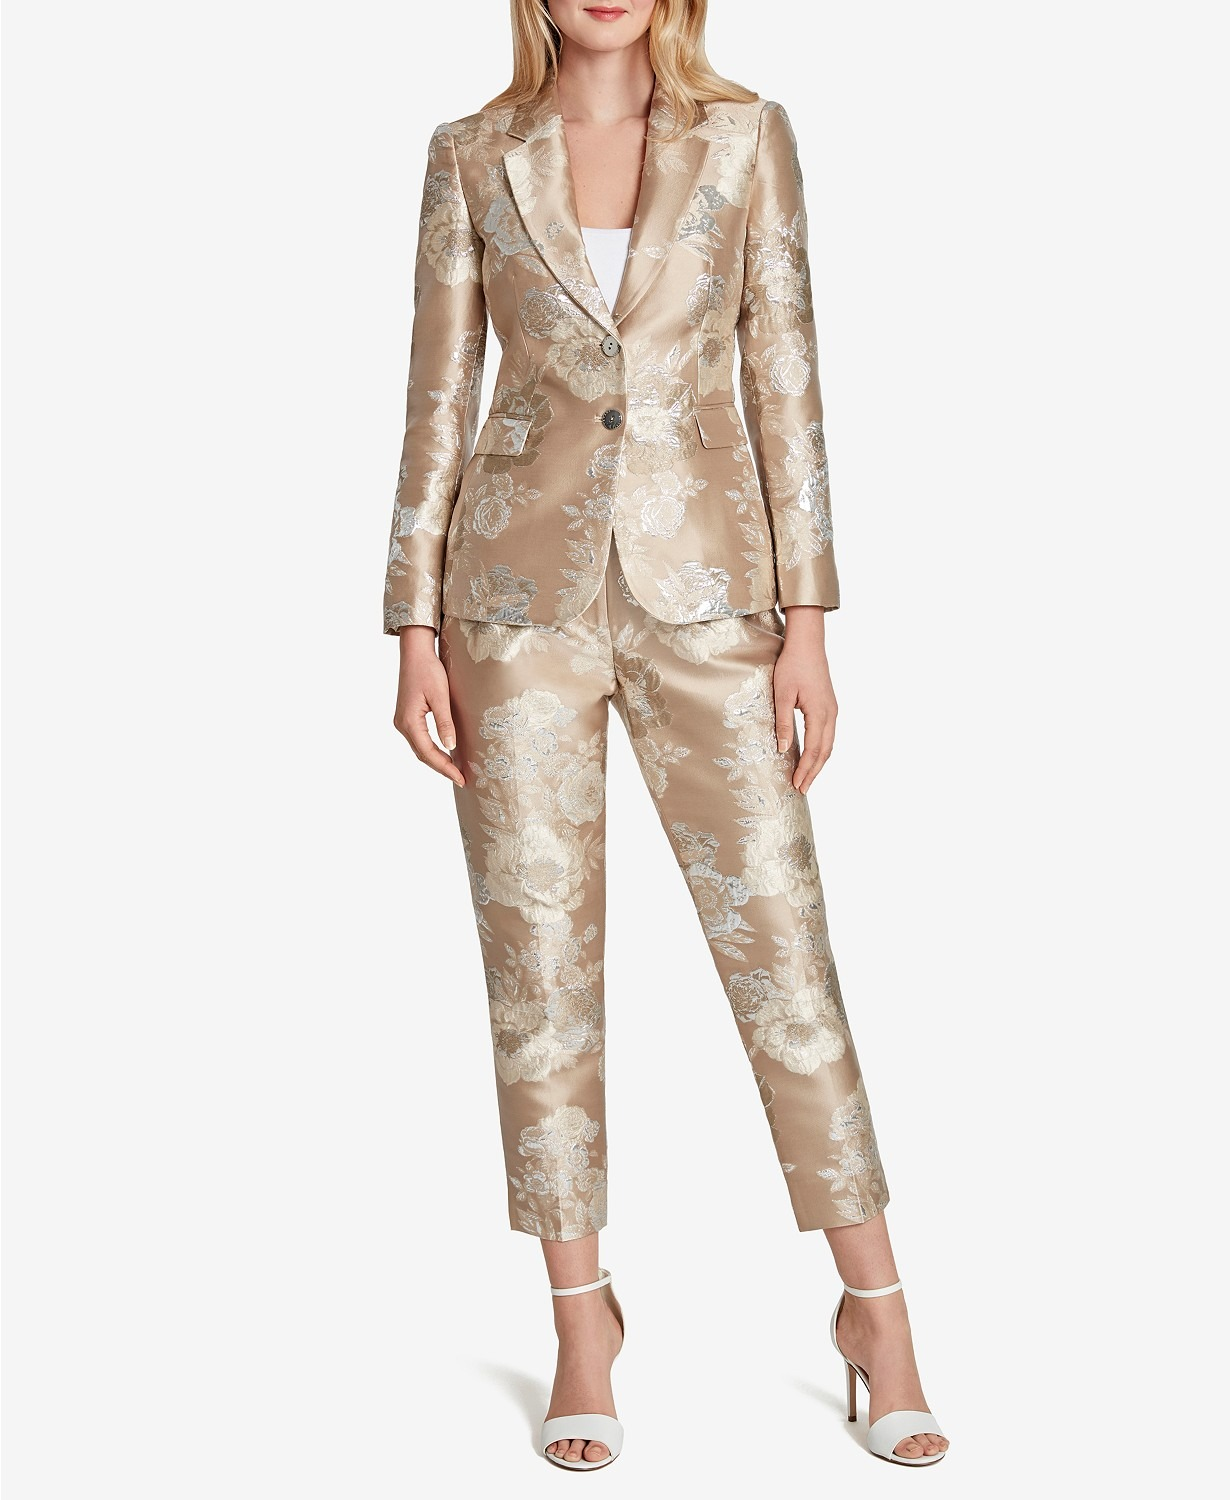 metallic floral fitted Macys mother of the bride pant suits with seven eights leg length